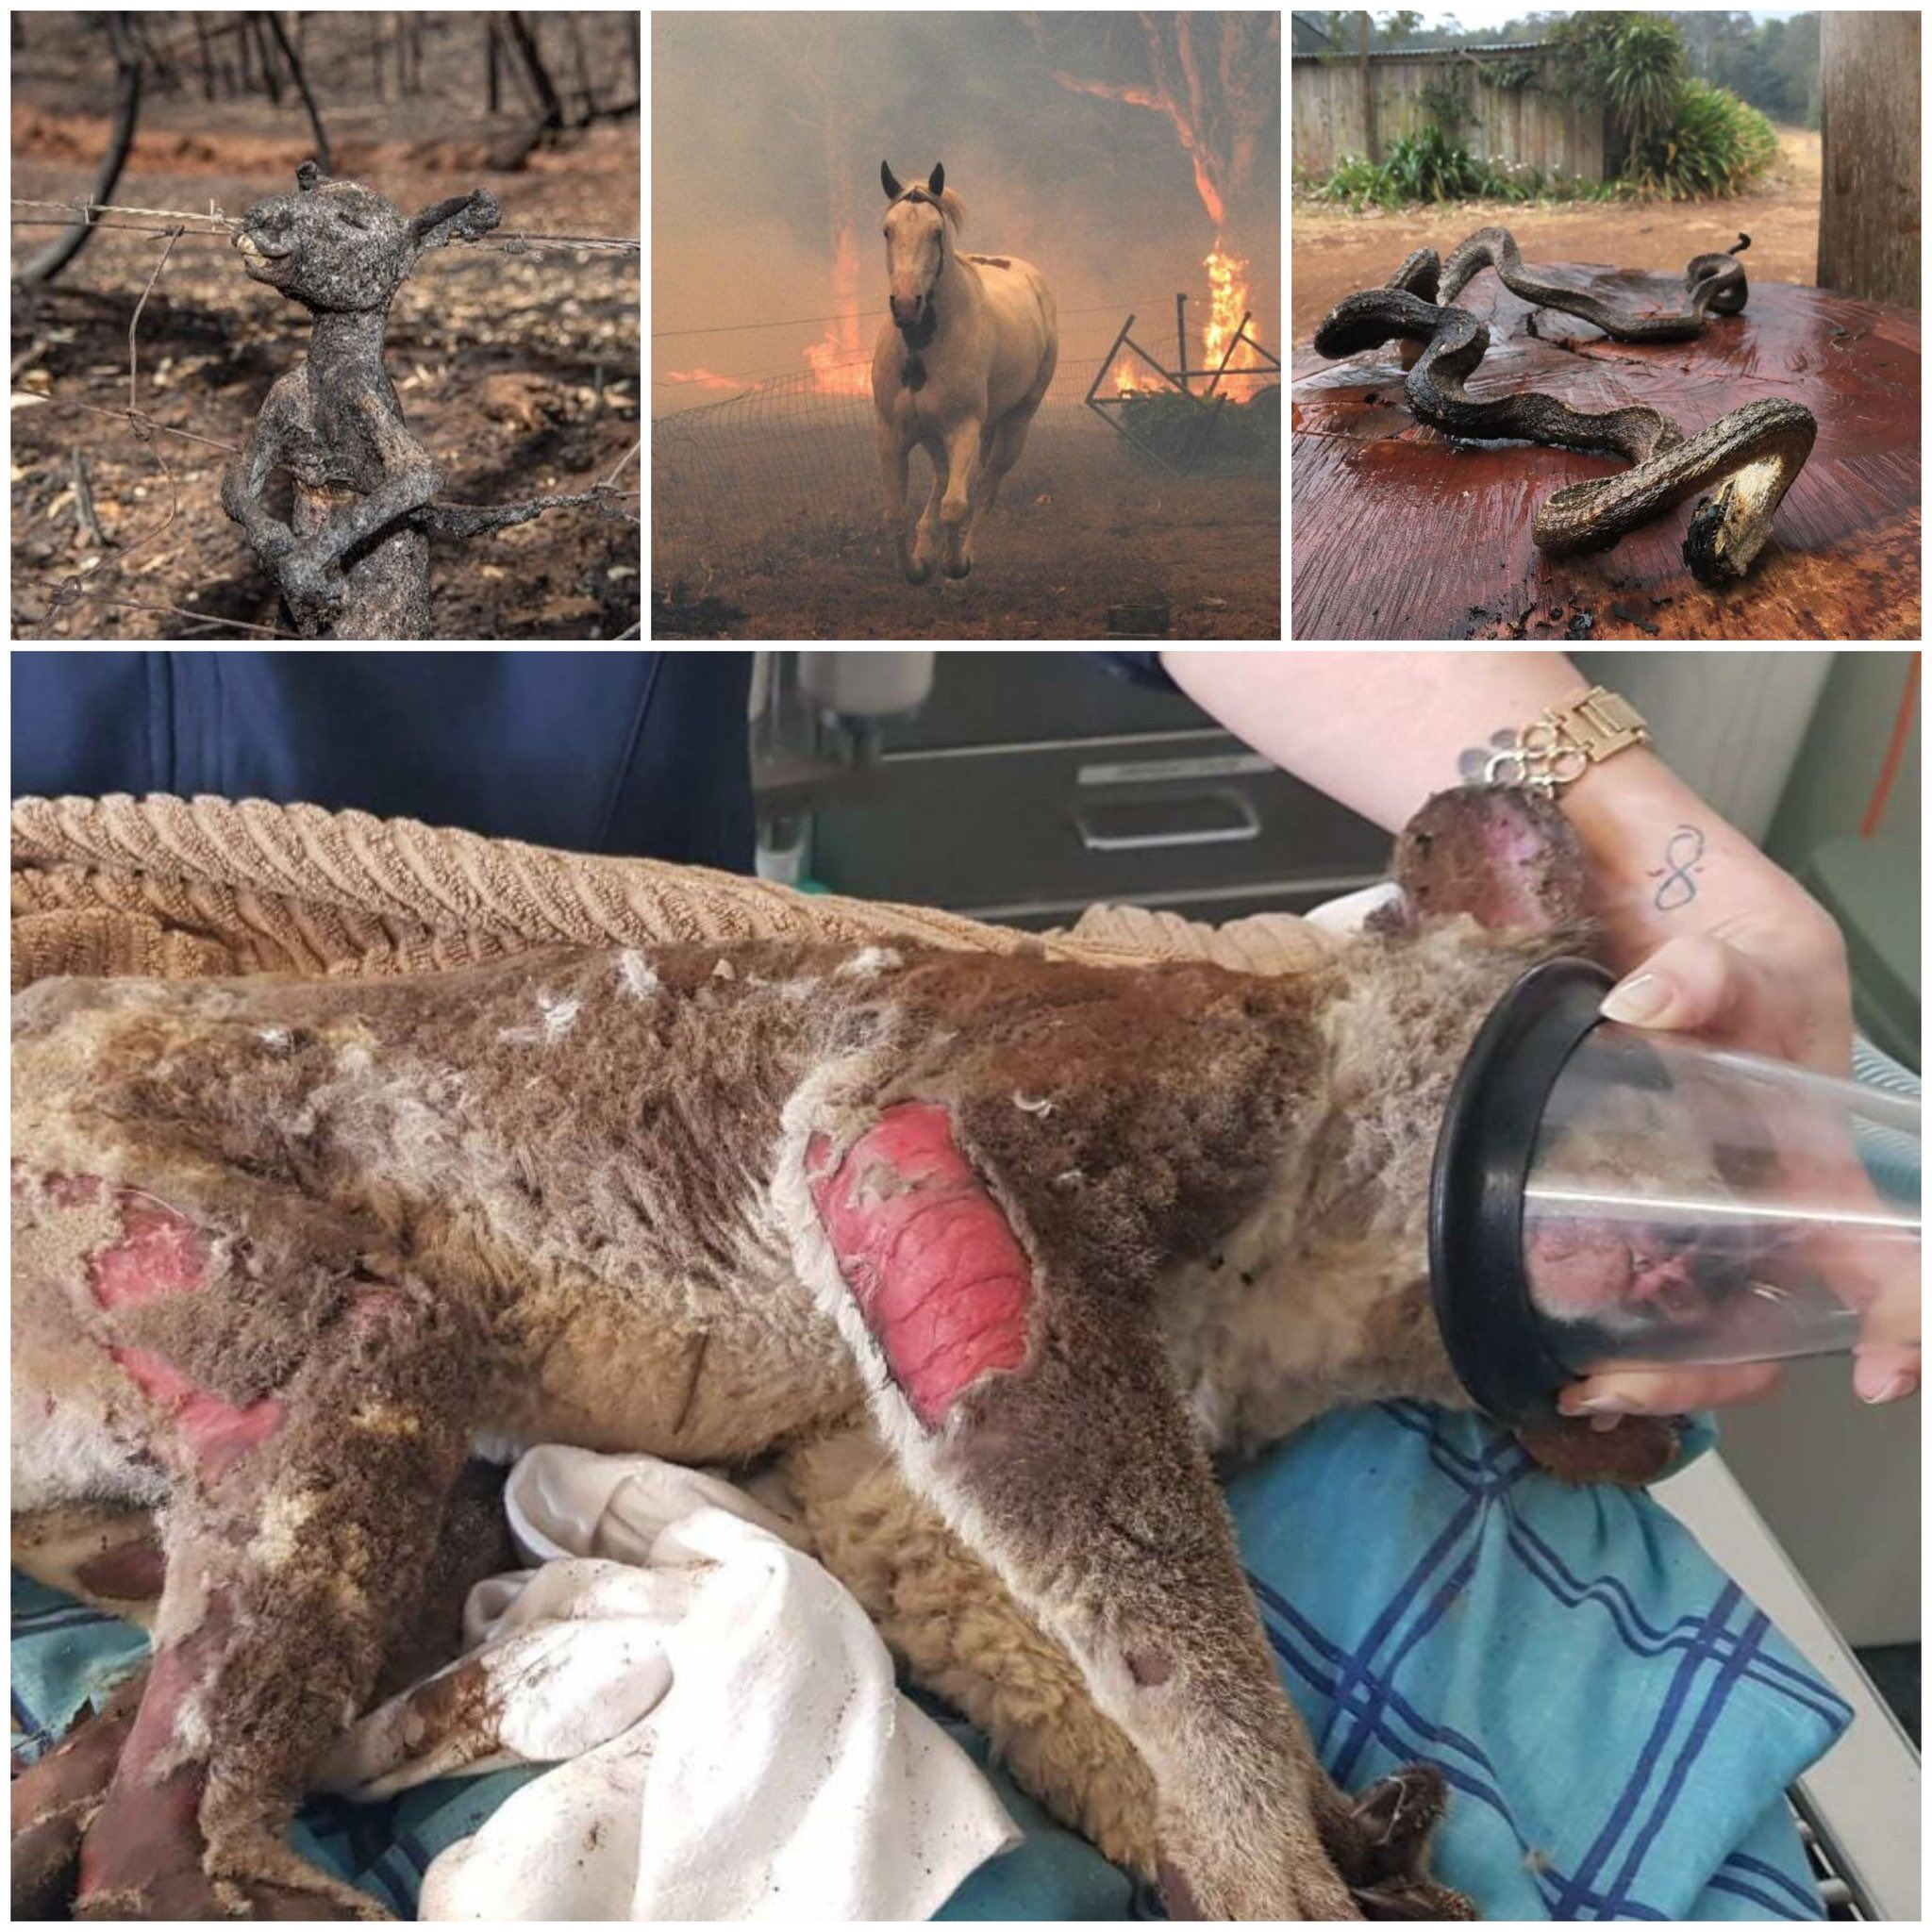 Forest Fire Jihad in Australia. Over 500 million animals killed.